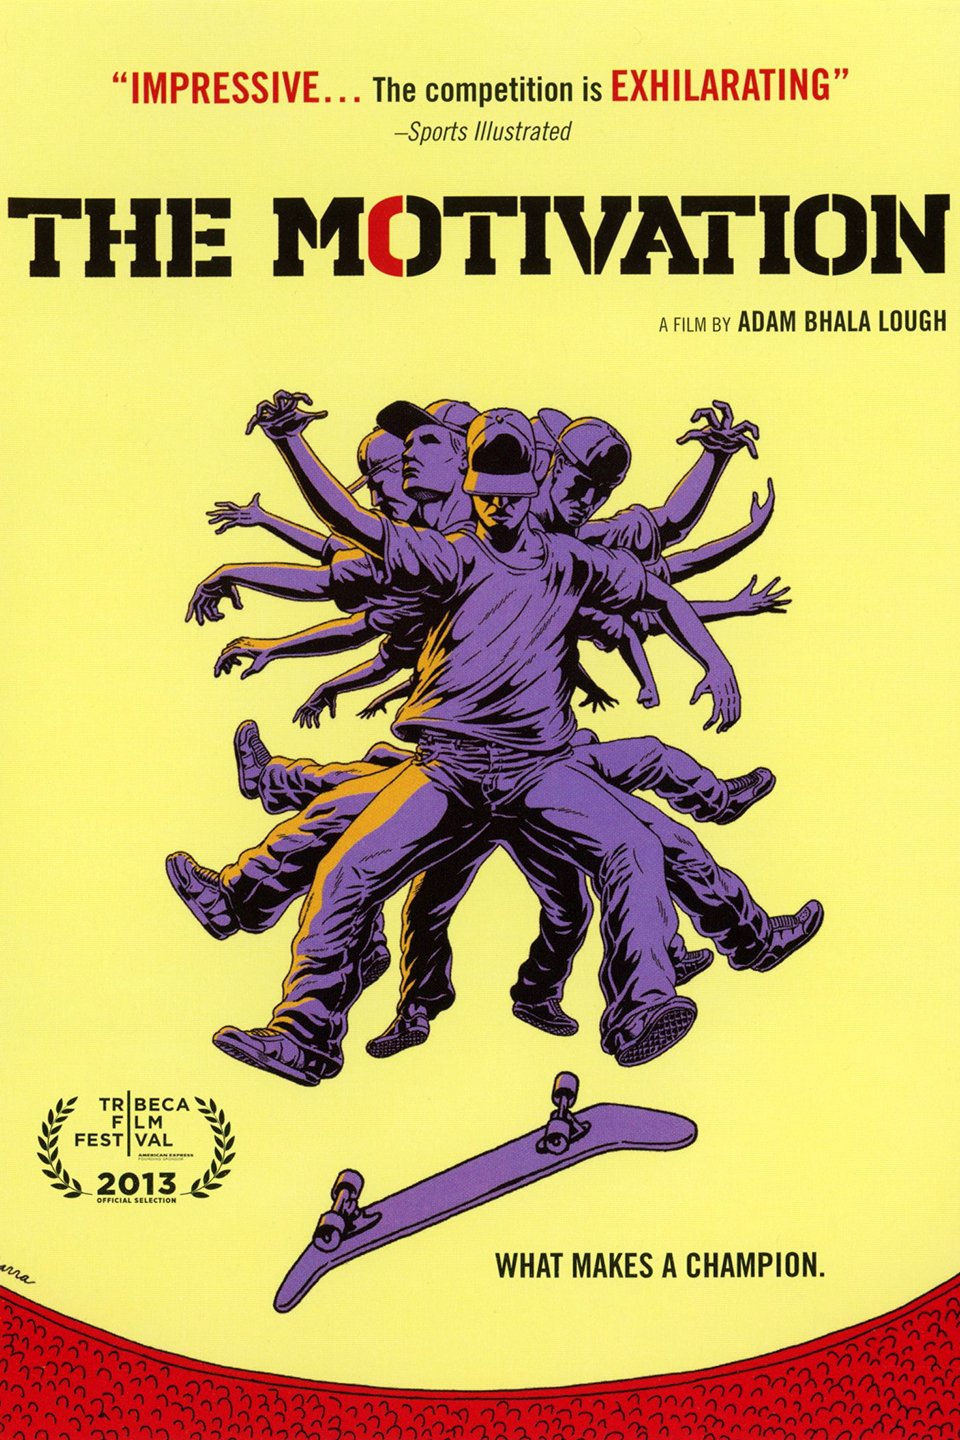 Movie poster for 'The Motivation', depicts image of eight skaters.